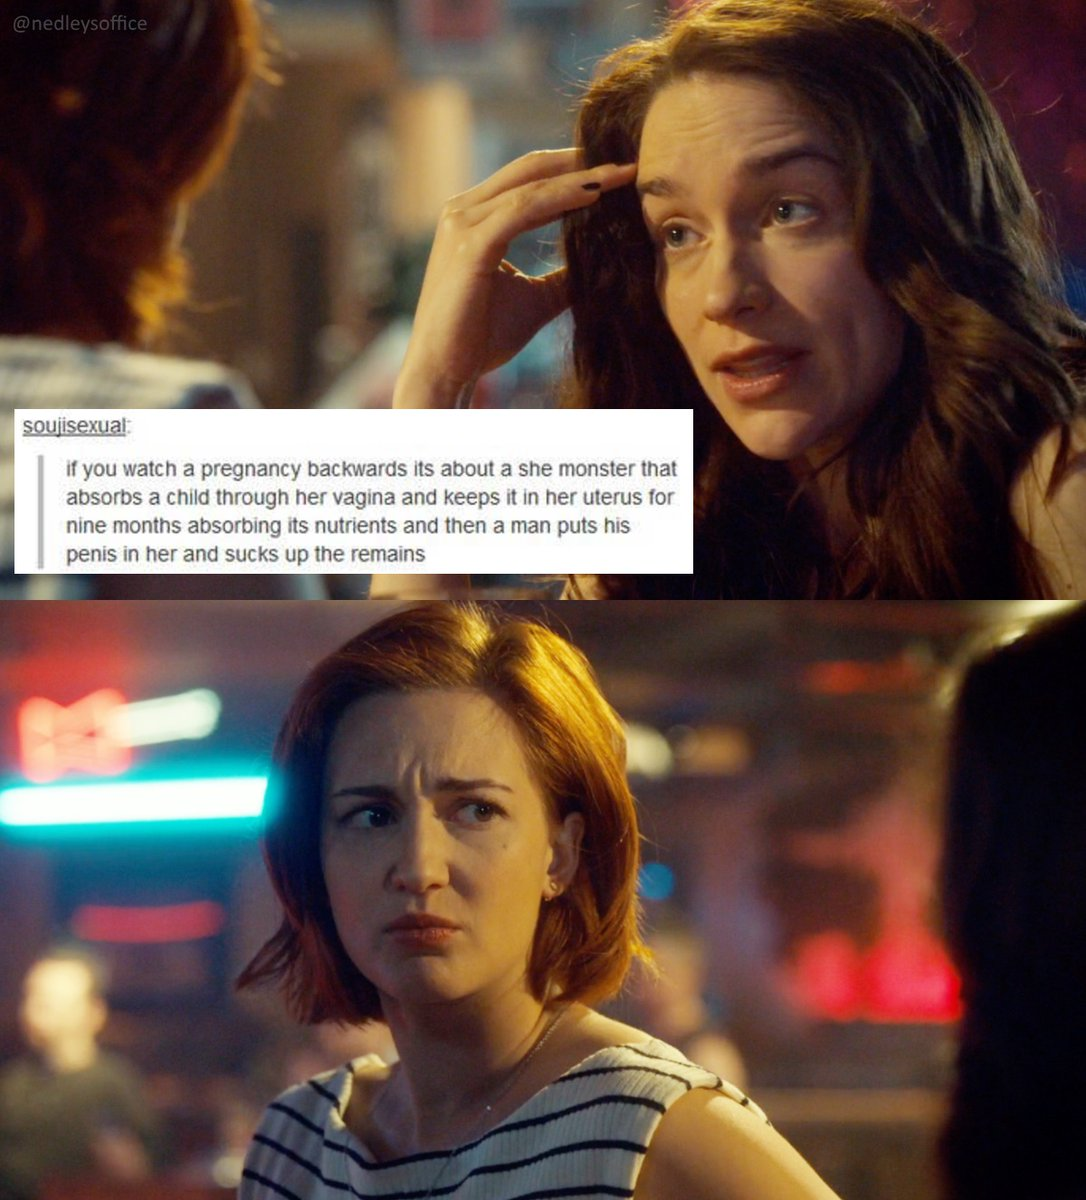 I honestly don't know why I think this is so funny but I do.  From the archives:  #textpost + #WynonnaEarppic.twitter.com/6ei2jMs4x2